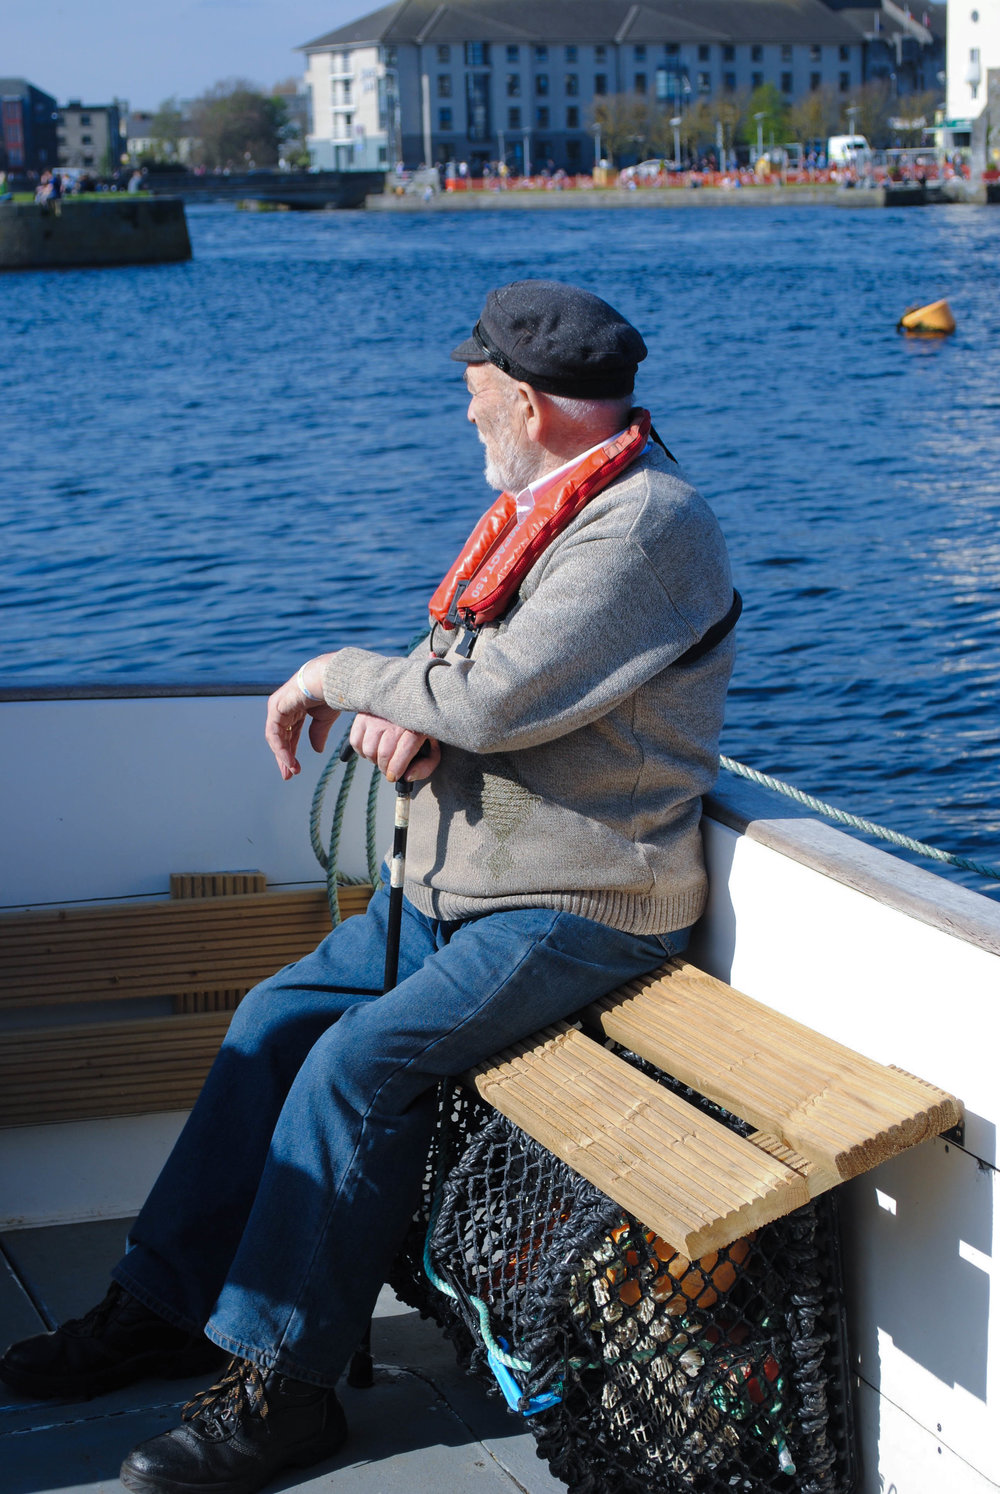 Claddagh life was built around traditional fishing culture. - Community boat tour with skipper Ciaran Oliver, one of the original Claddagh Families.